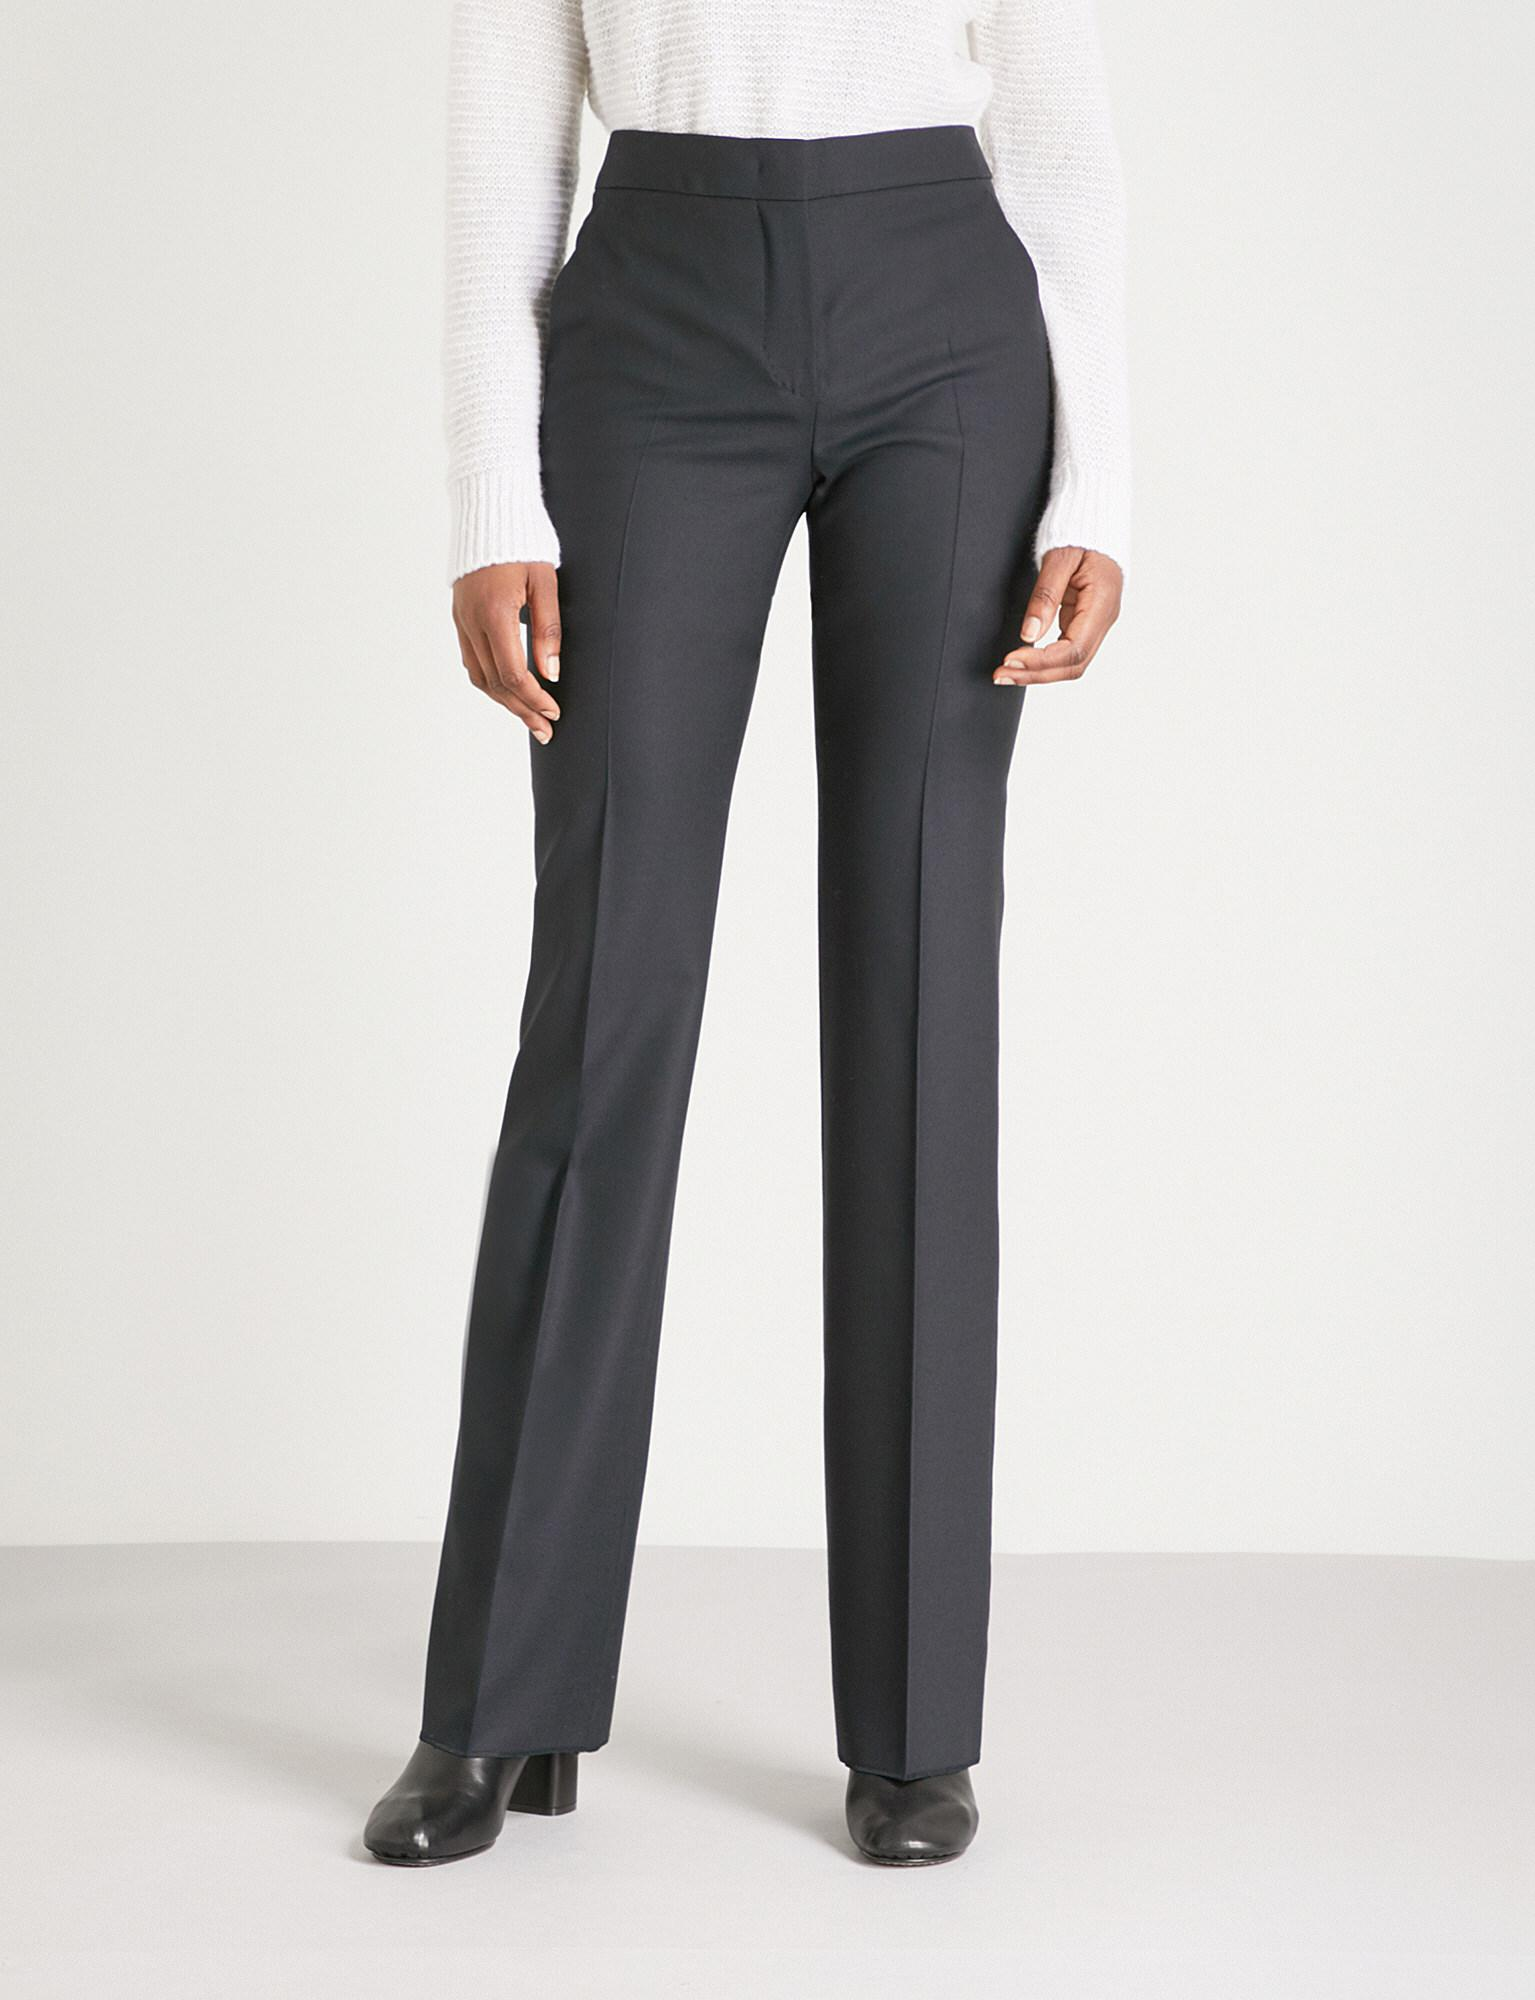 Free Shipping Official MaxMara High-Rise Silk-Blend Pants Clearance Collections Really Sale Online 8G6iU